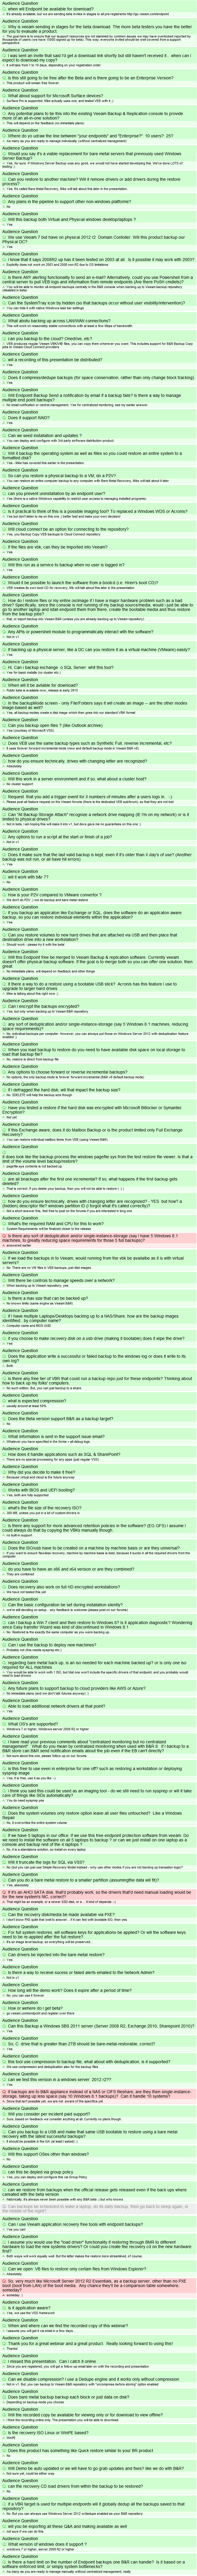 Transcript-from-Questions-on-Veeams-Dec-4-2014-webinar-preview-of-Veeam-Endpoint-Backup-24-bit